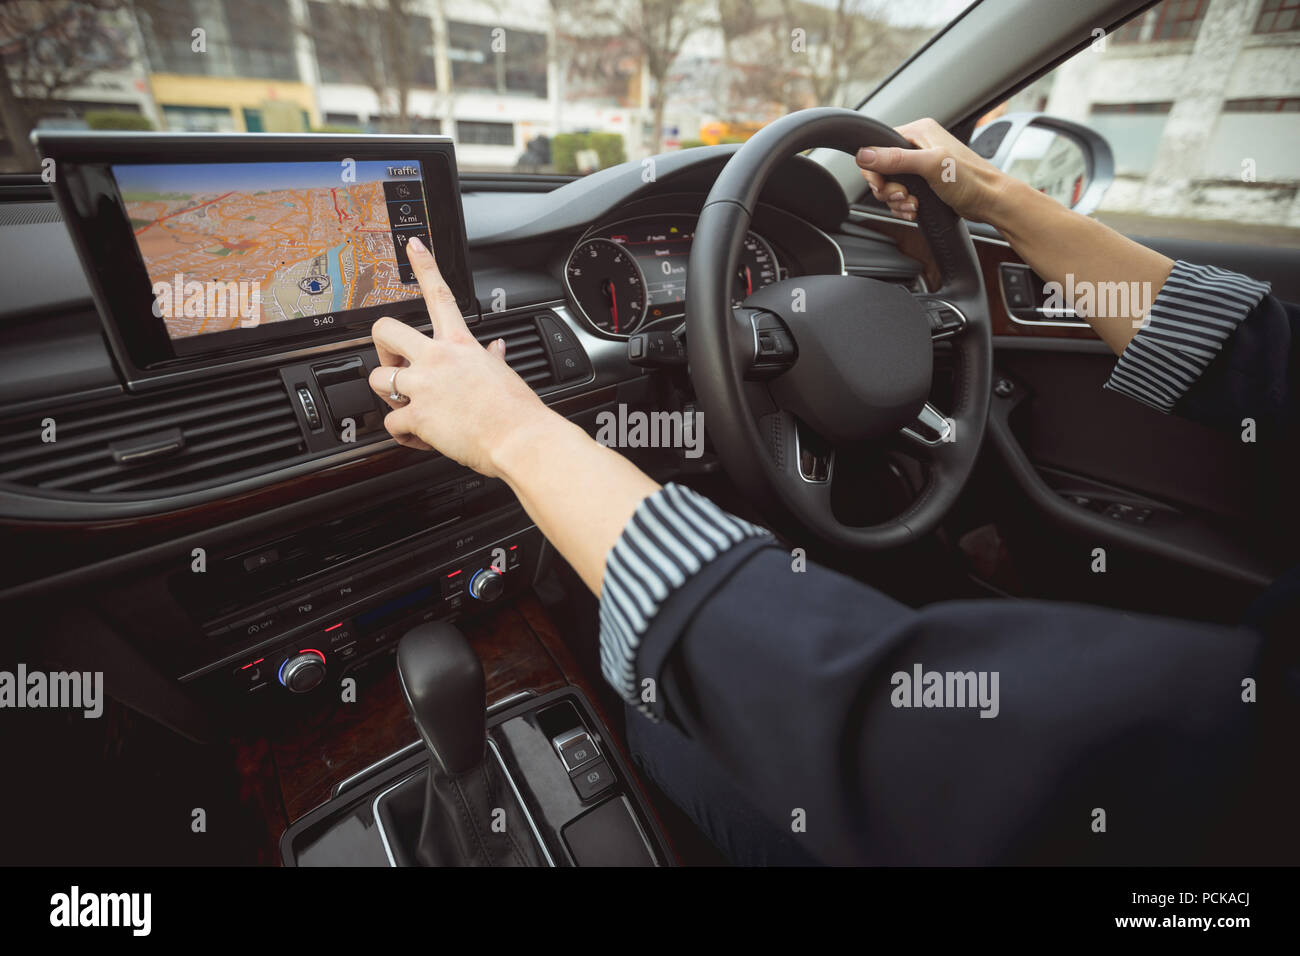 Female executive using navigation while driving a car Stock Photo